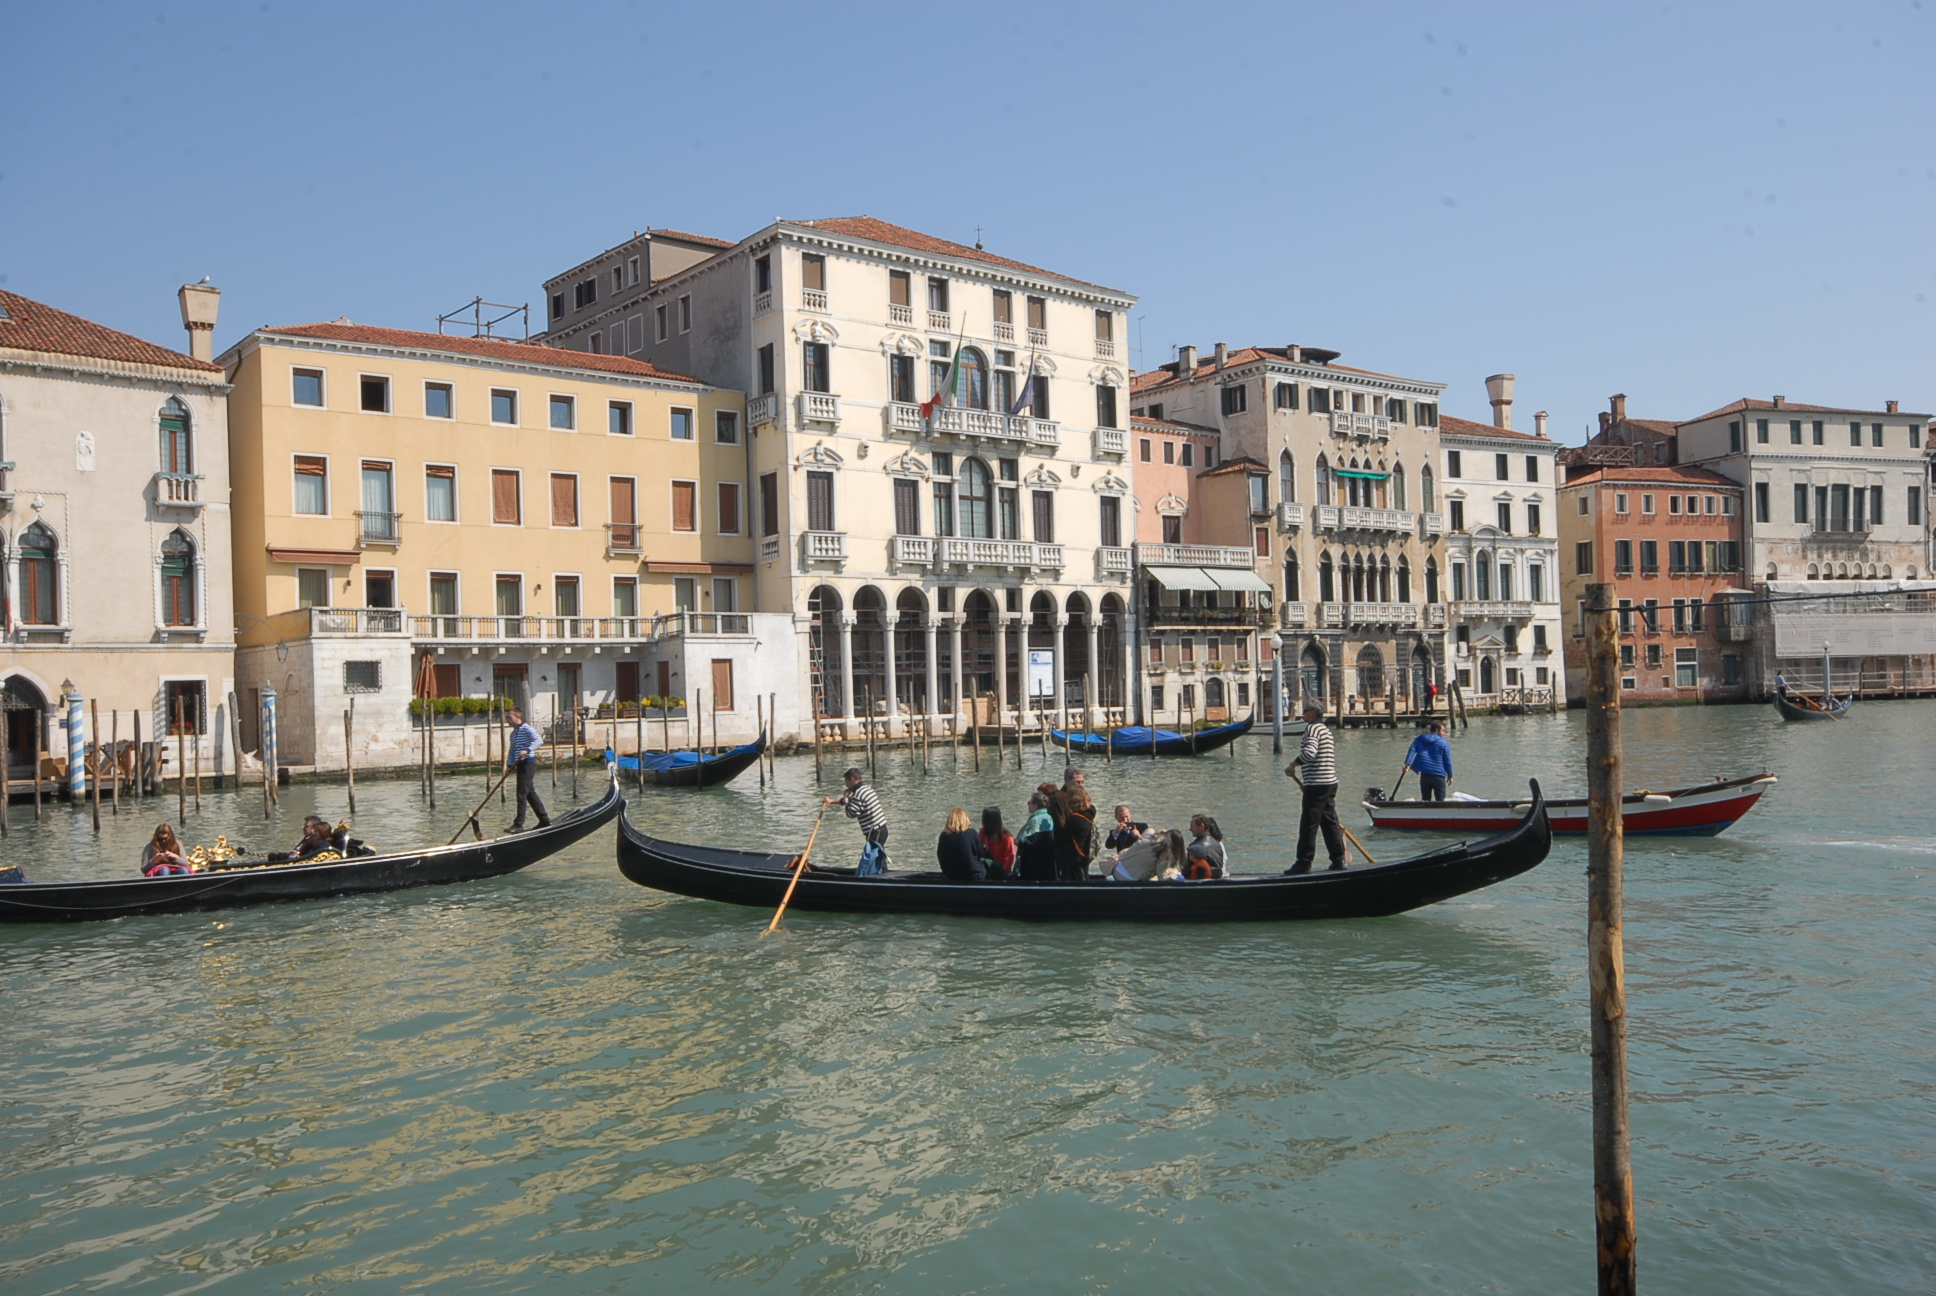 Crossing on a ferry